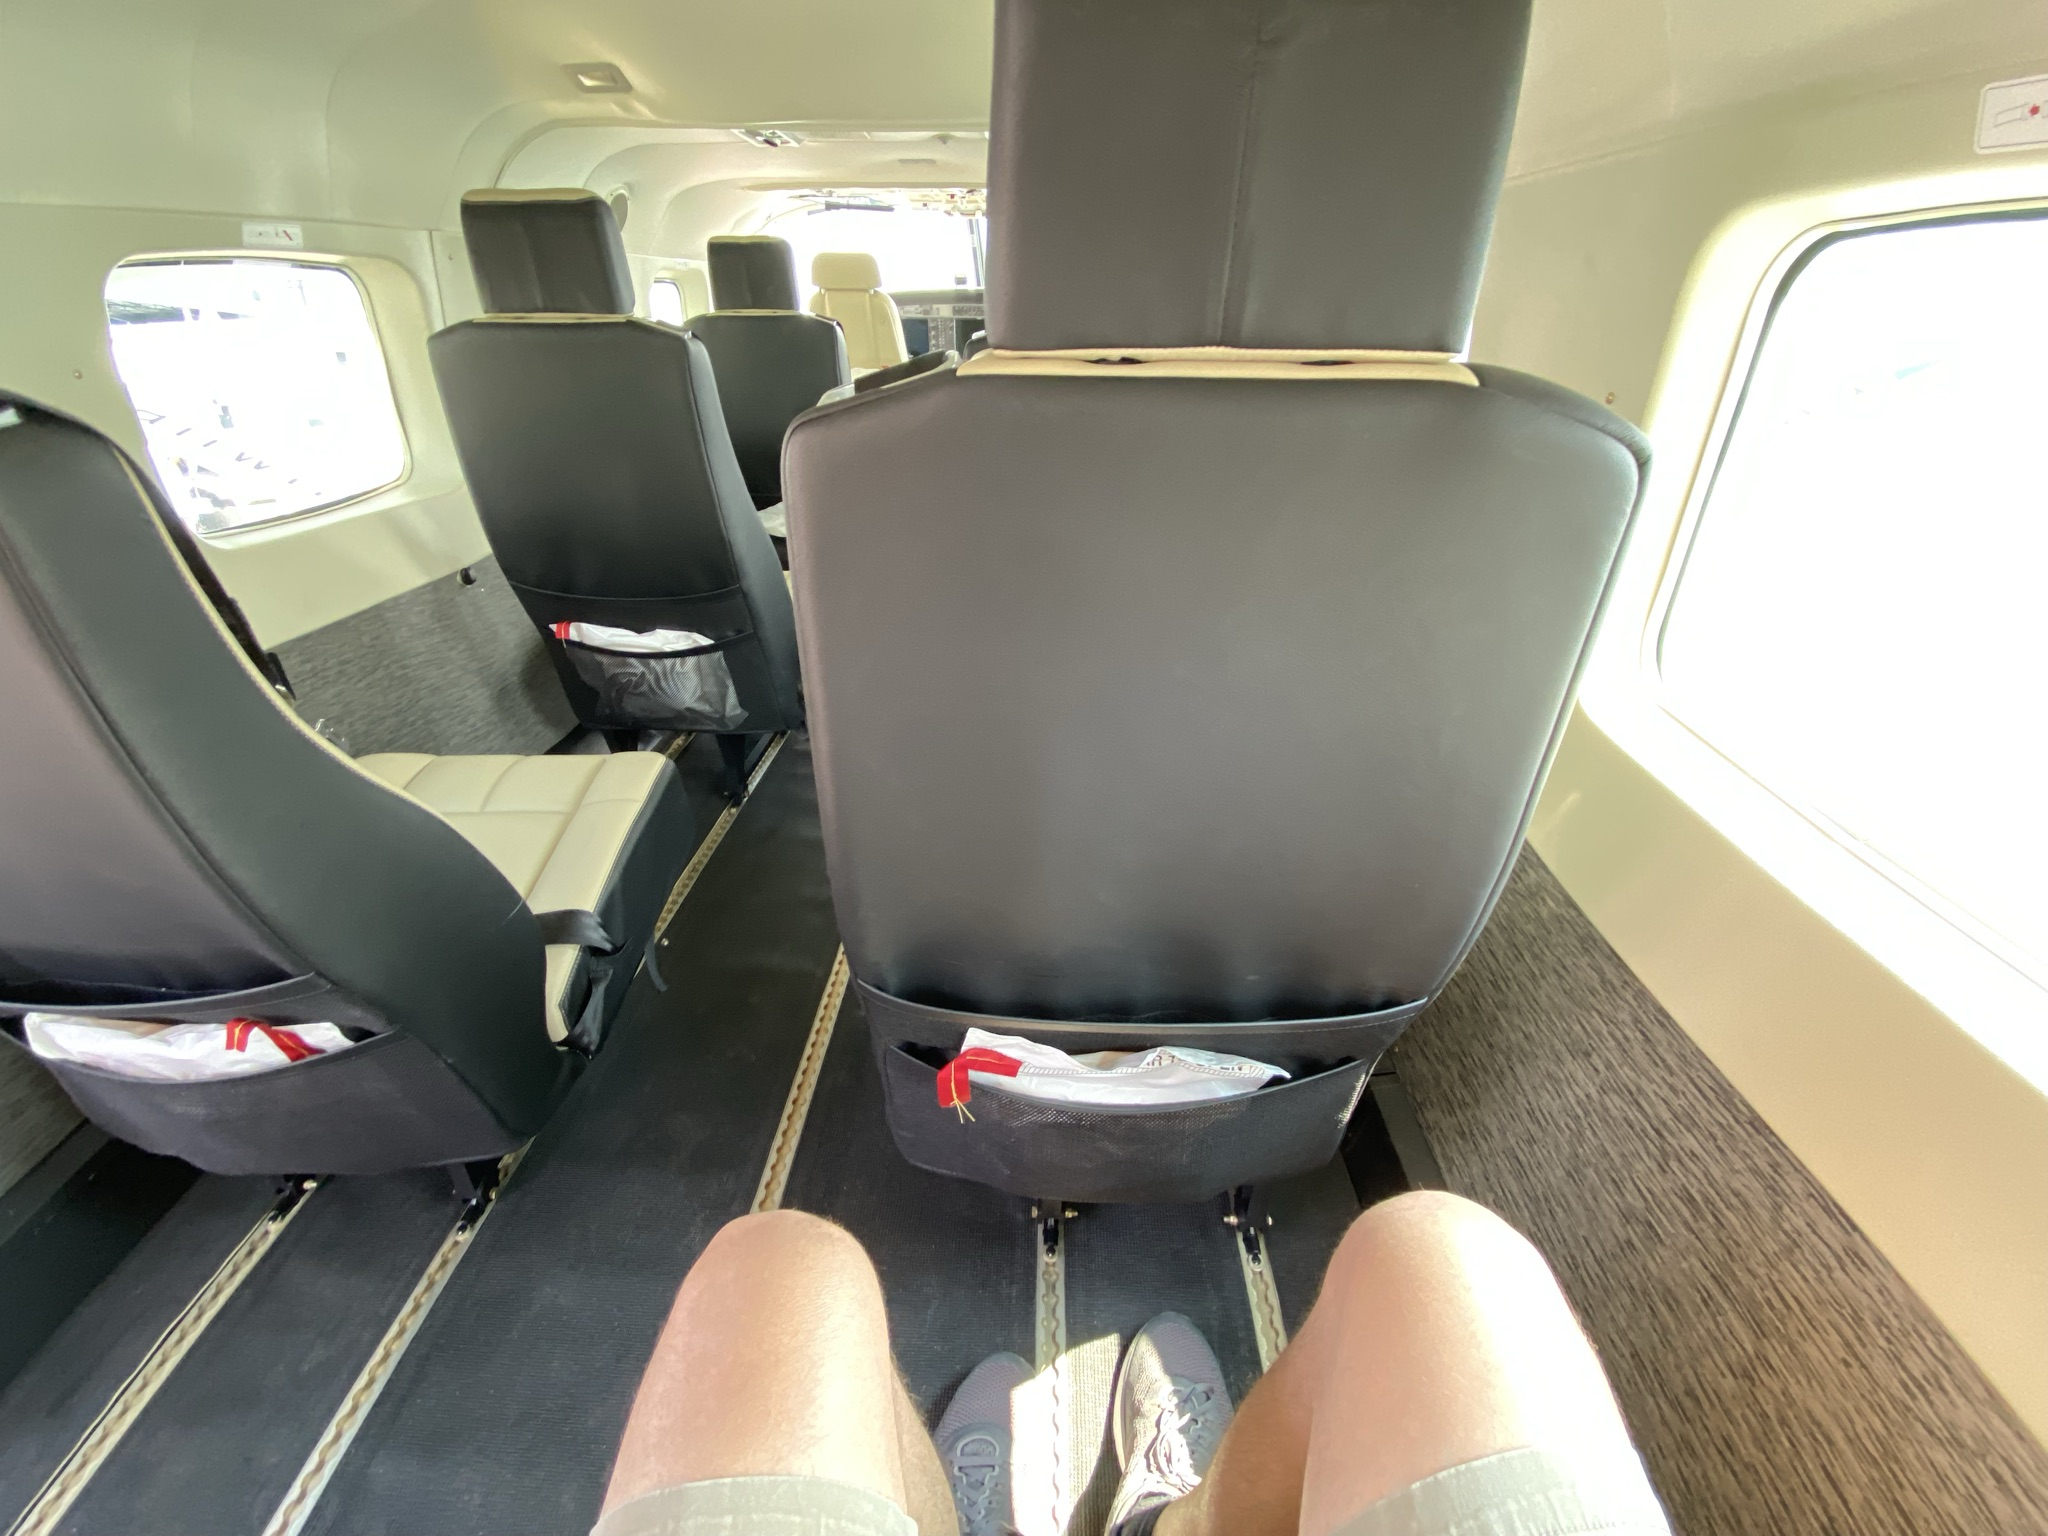 Interior of the Tailwind seaplane. The author's knees are shown in this pic as he is showcasing the ample legroom in front of him